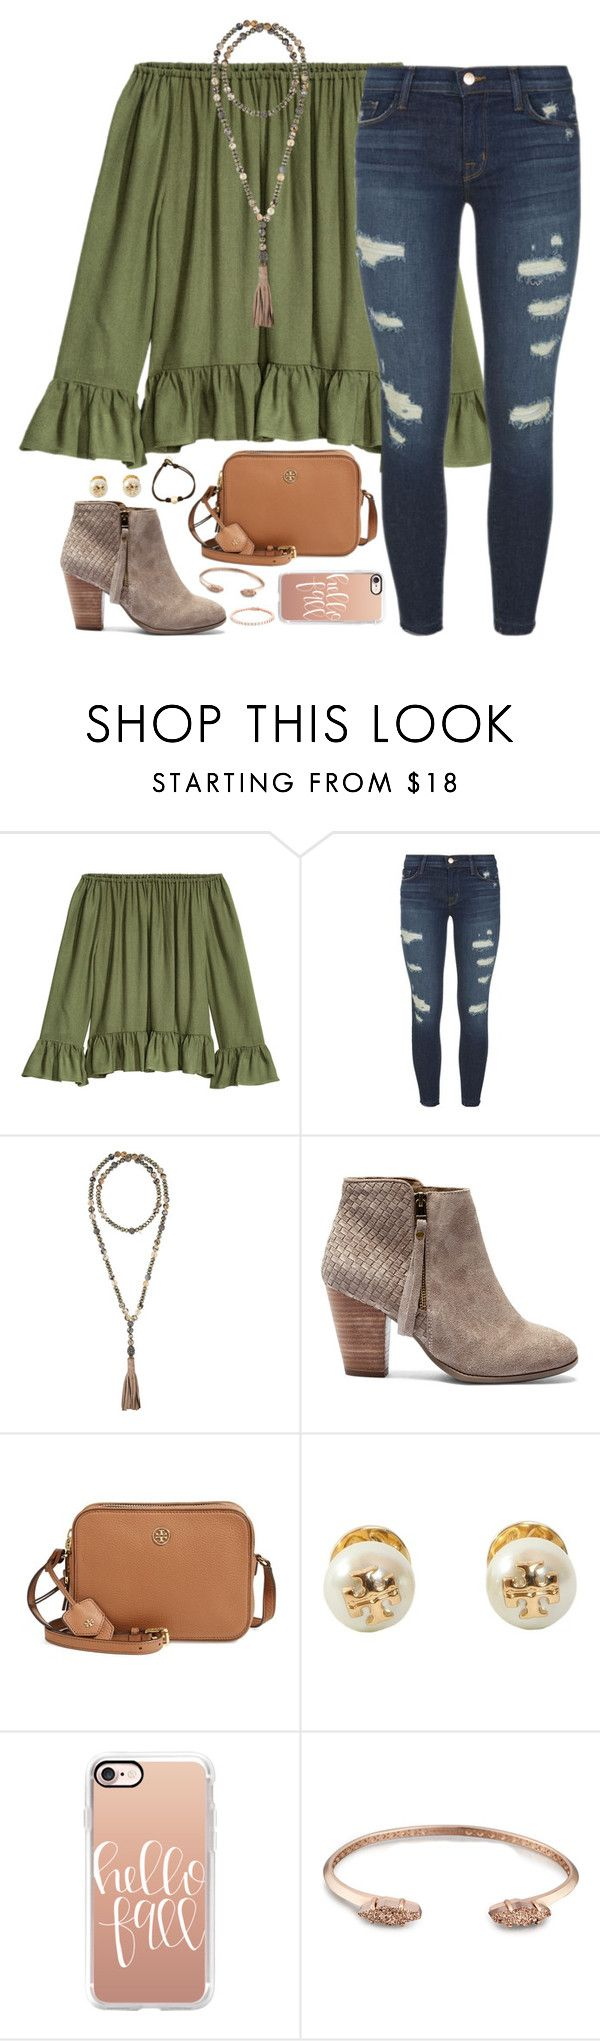 """""""when you're a downie, eat a brownie"""" by kaley-ii ❤ liked on Polyvore featuring J Brand, Hipchik, Sole Society, Tory Burch, Casetify and Kendra Scott"""